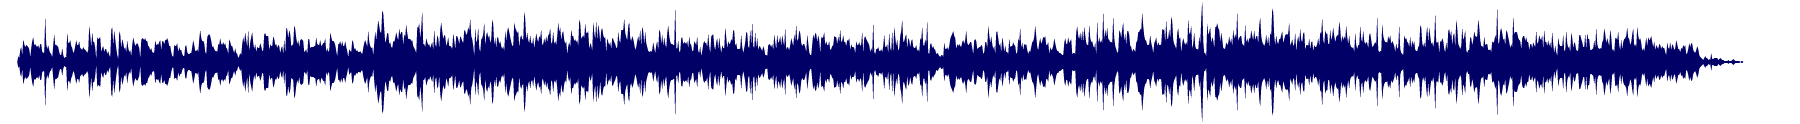 waveform of track #70143